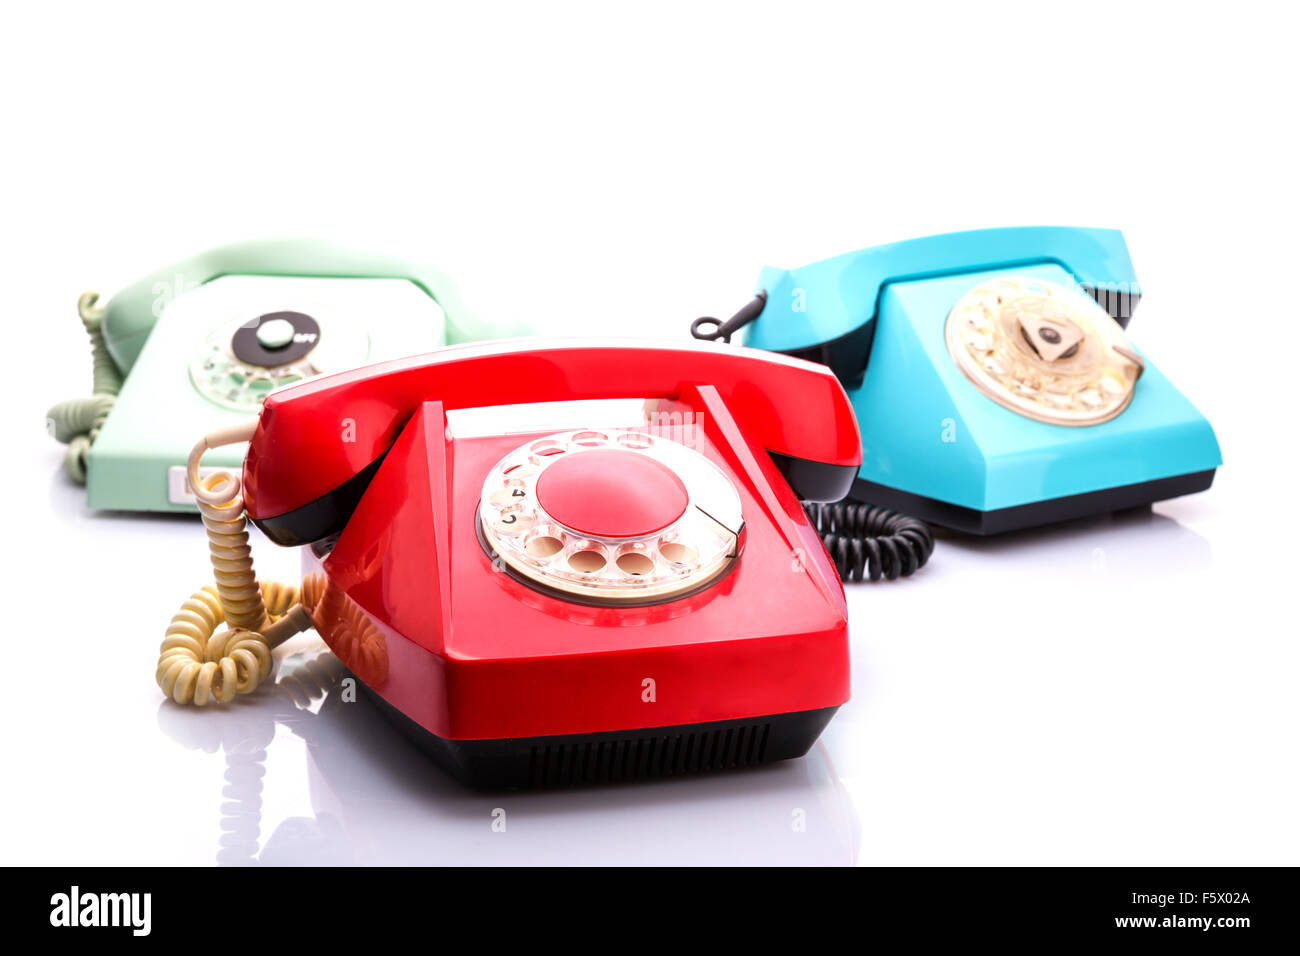 Set of vintage telephones isolated on white background - Stock Image